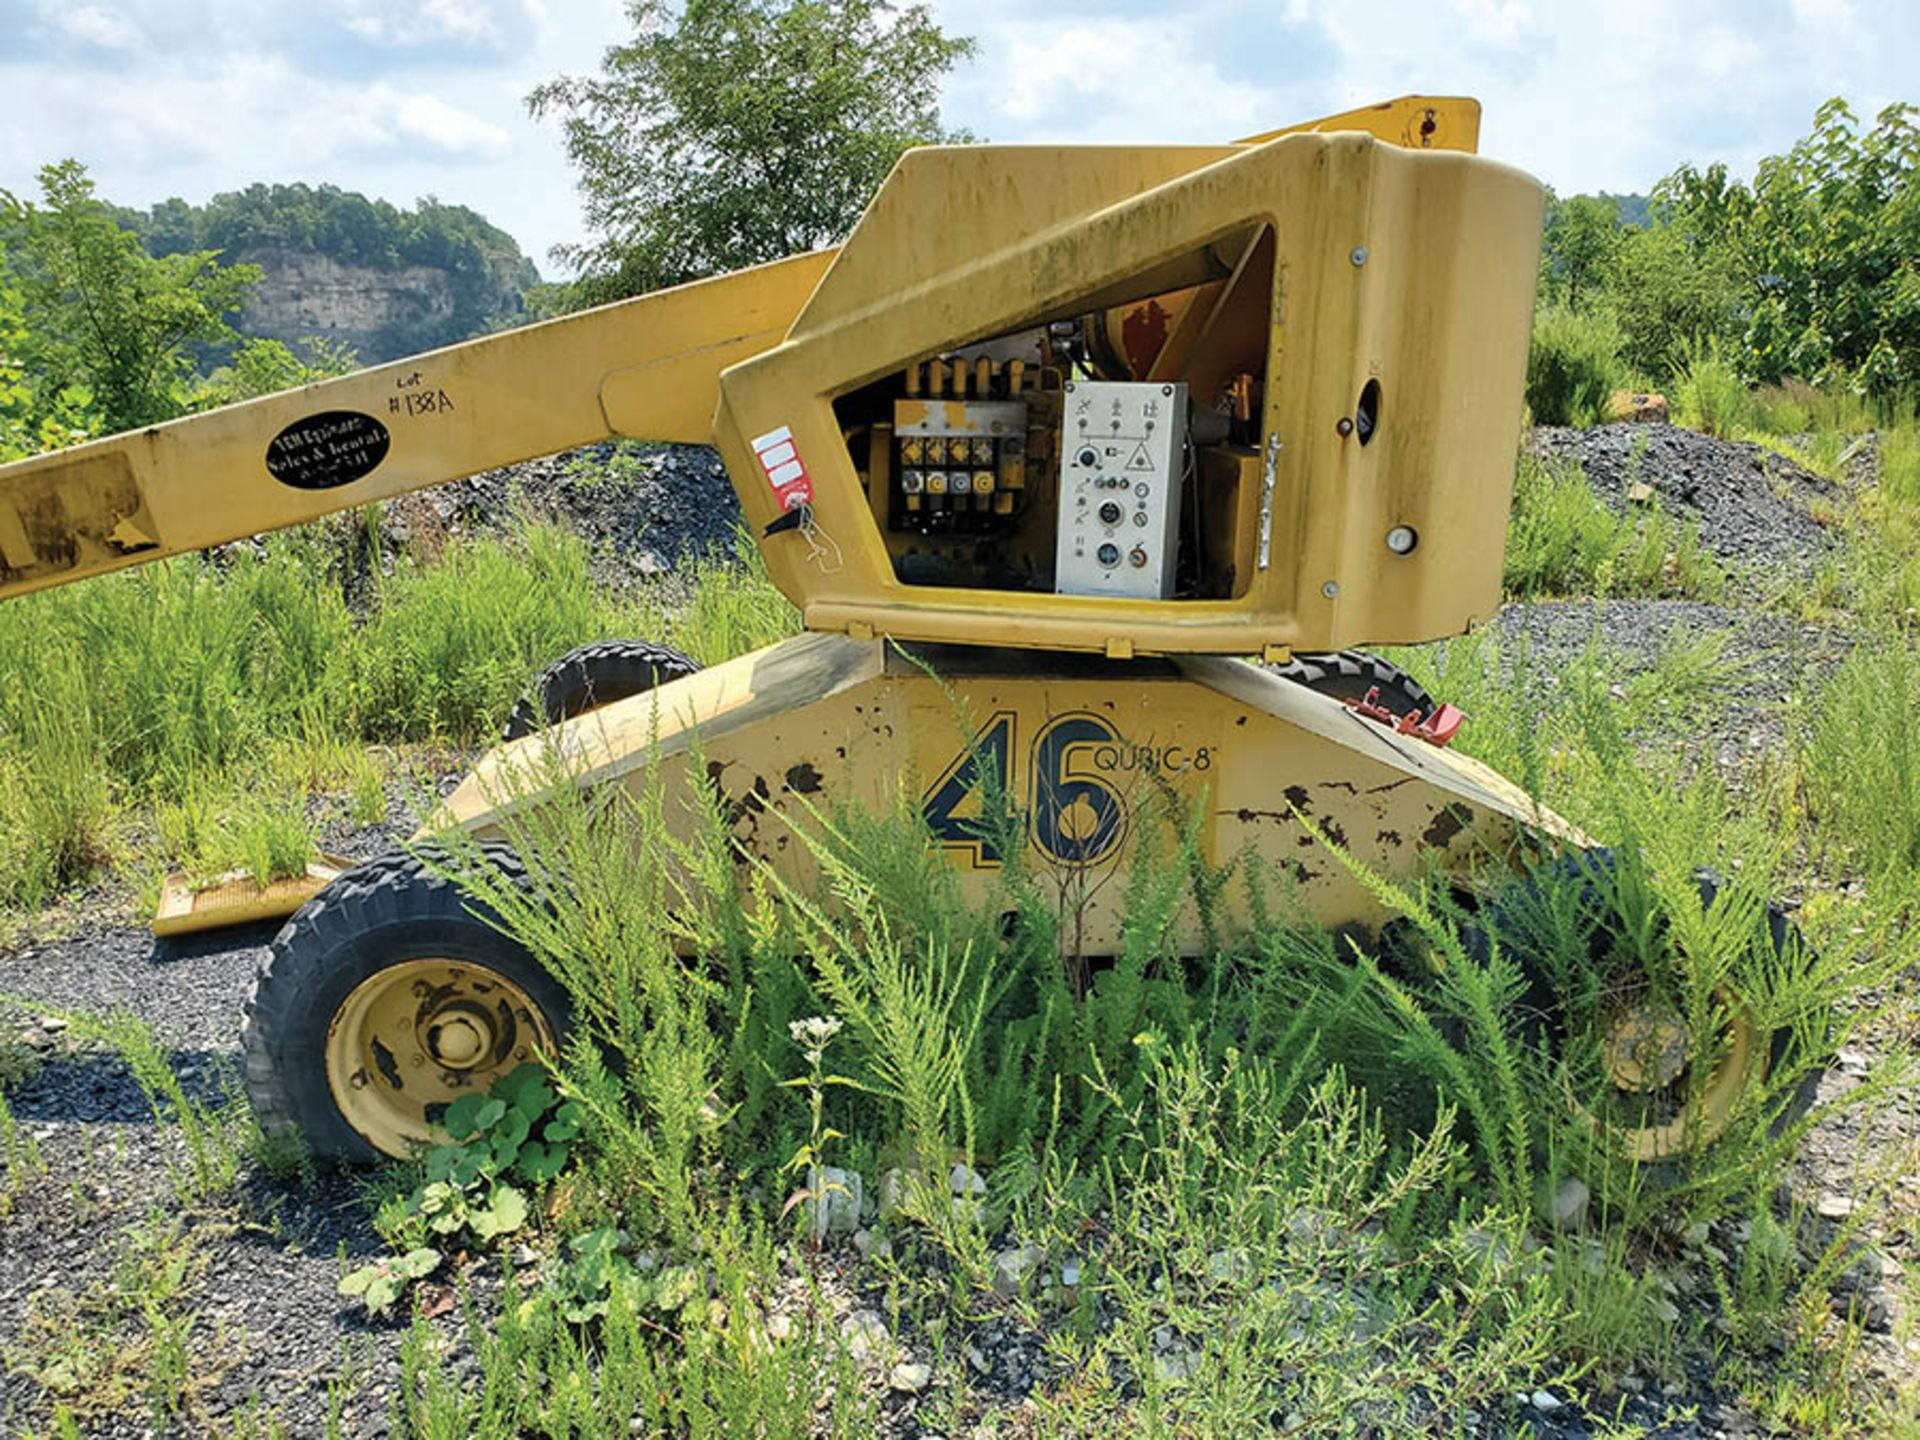 Lot 138A - CALAVAR CONDOR BOOM LIFT, WISCONSIN GAS ENGINE, 3,172 HOURS SHOWING, NON-RUNNING PARTS MACHINE